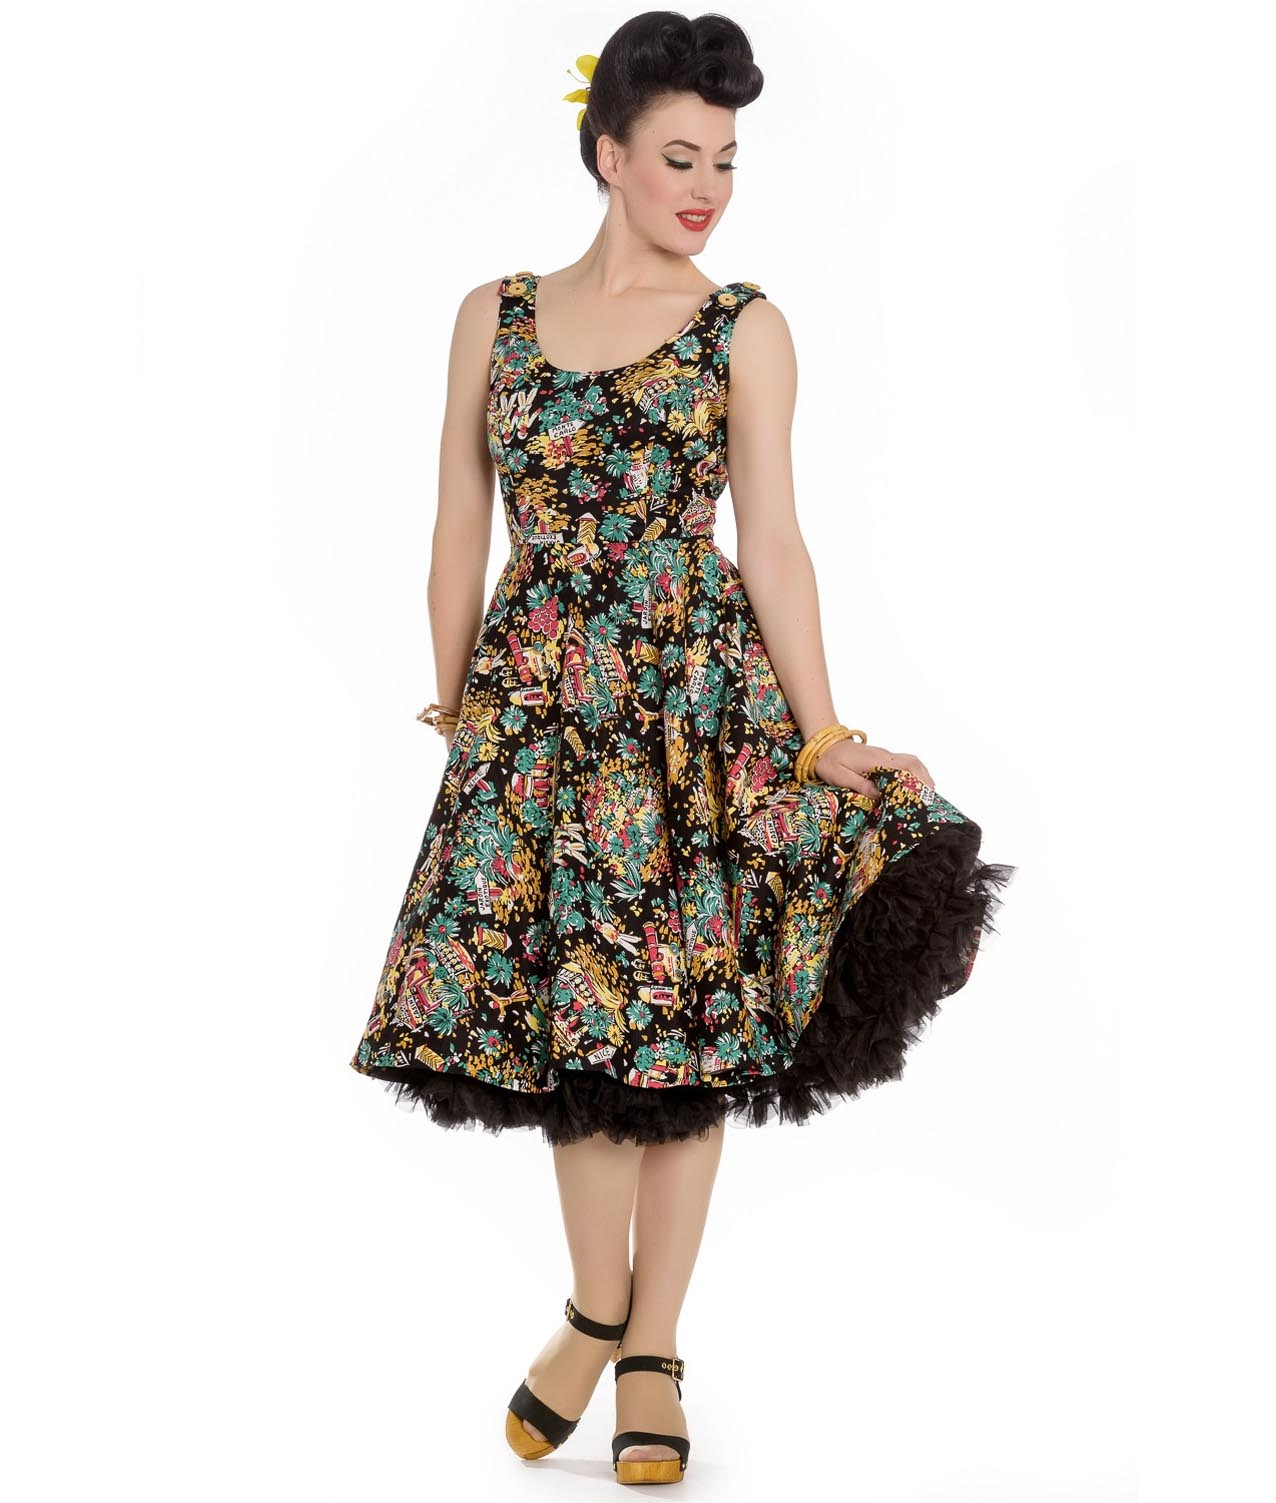 Hell-Bunny-Summer-50s-Black-Dress-MONTE-CARLO-Tropical-Holiday-All-Sizes thumbnail 3